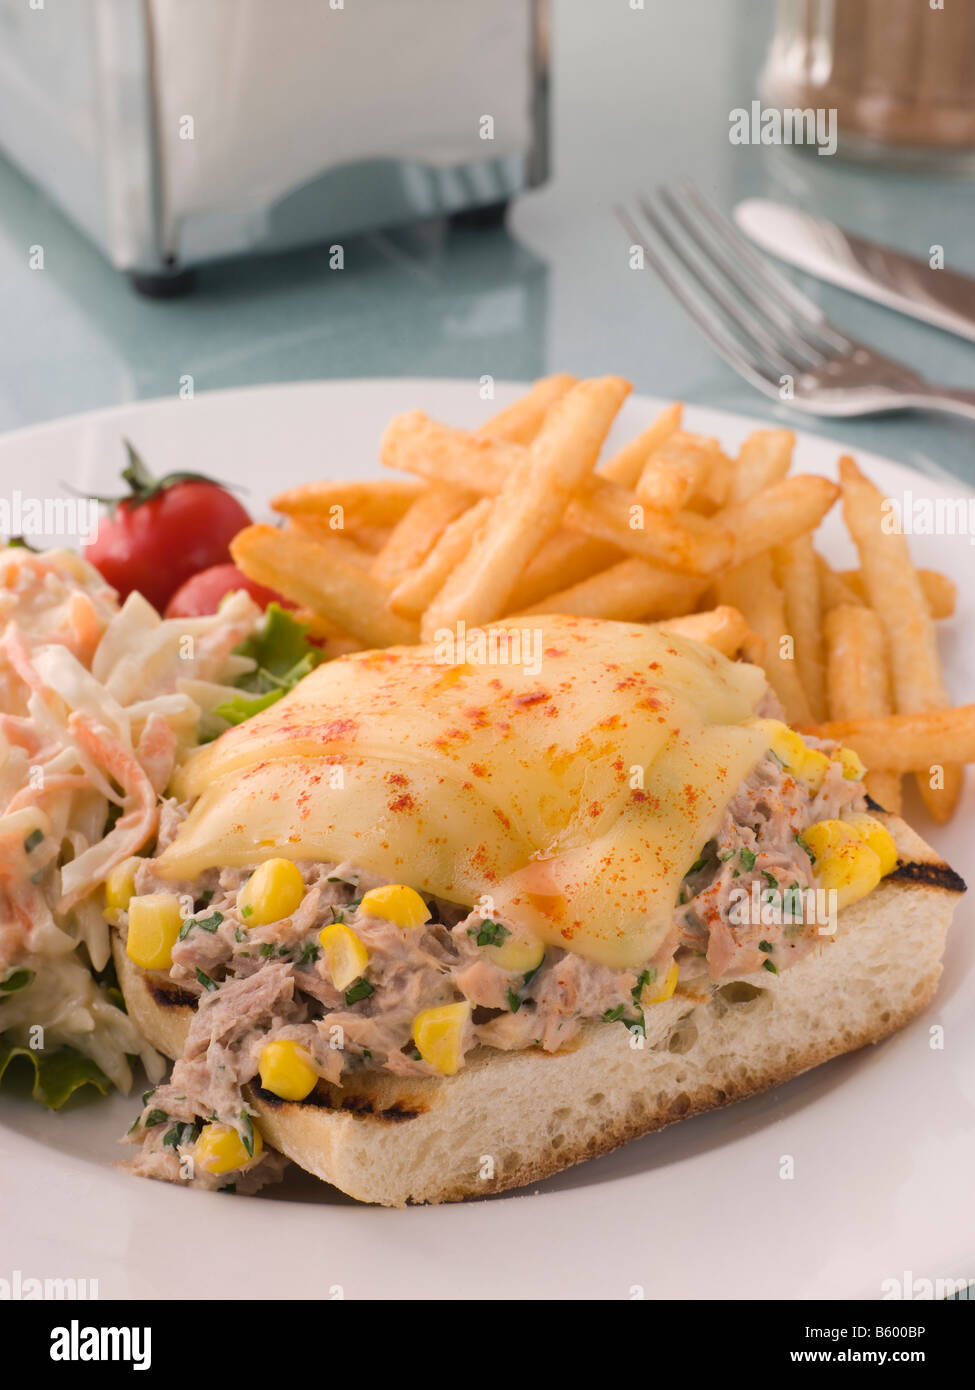 Open Tuna and Sweet corn Melt with Coleslaw and Fries Stock Photo